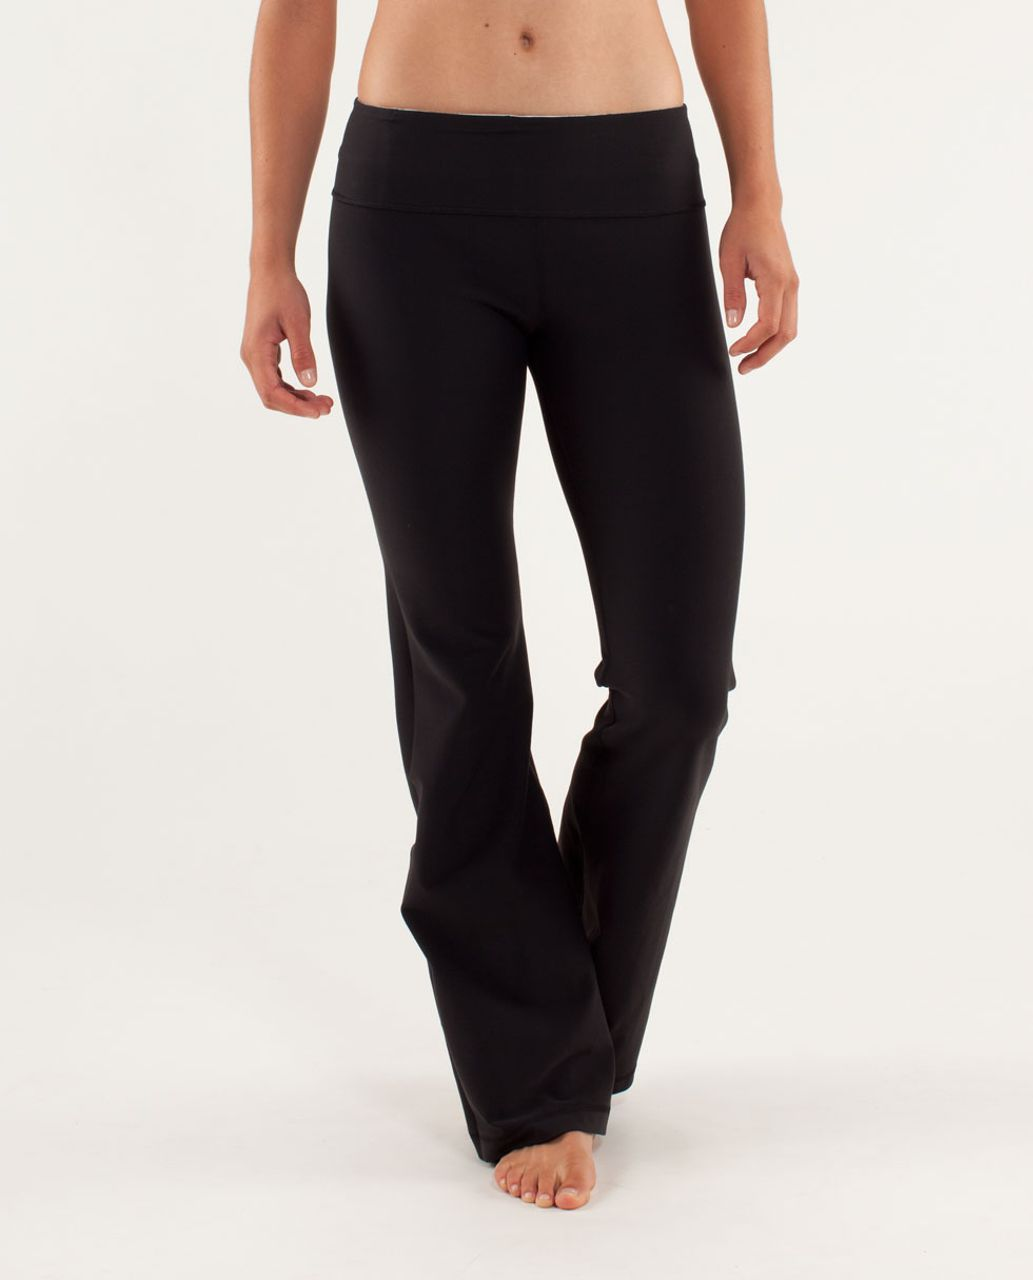 Lululemon Groove Pant (Tall) - Black / Milky Way Multi / Pigment Blue